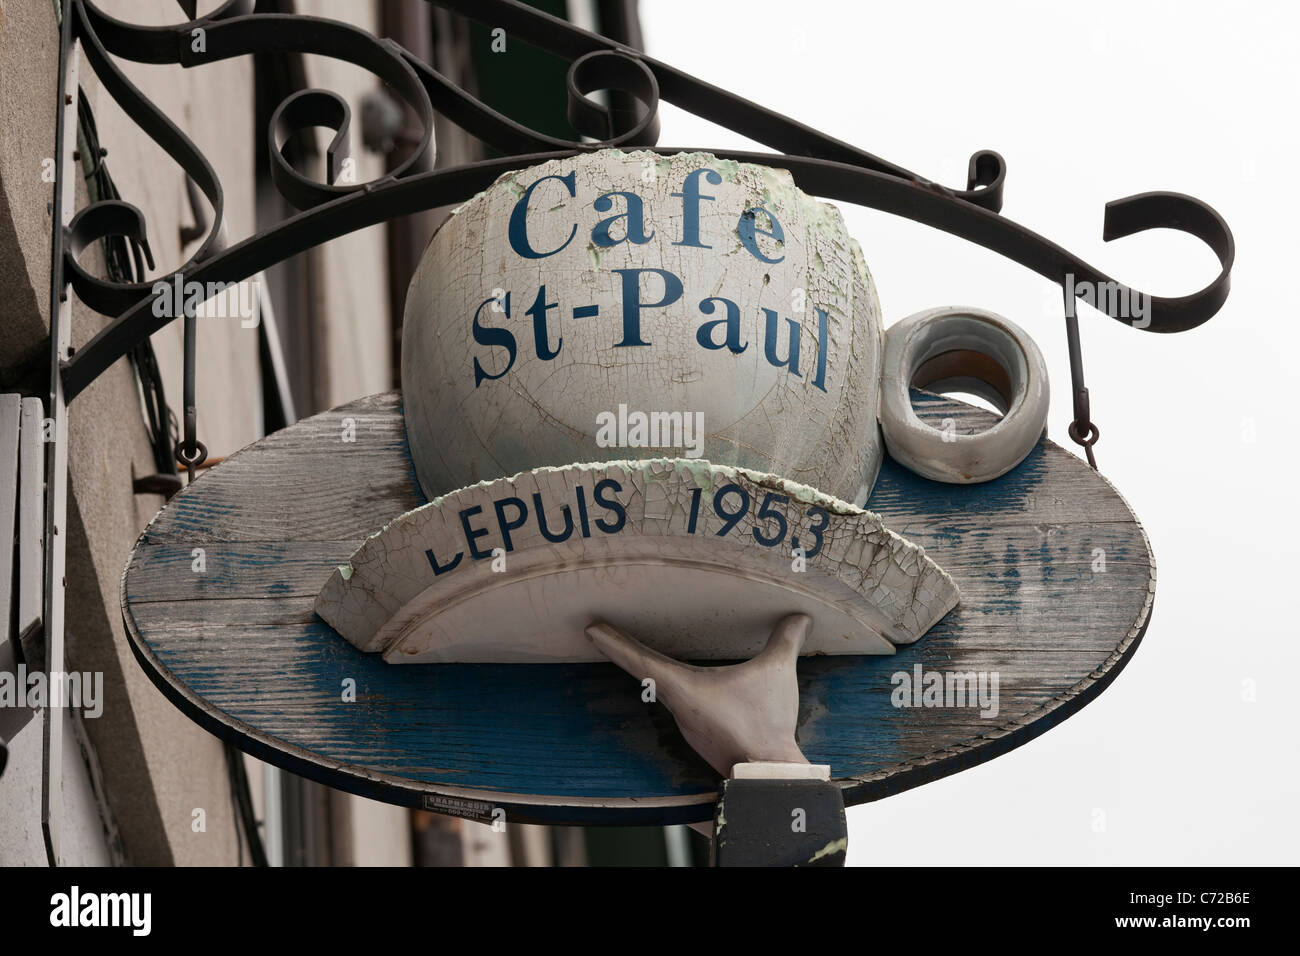 Canada,Quebec,Montreal,cafe sign, Cafe St-Paul since 1953 - Stock Image